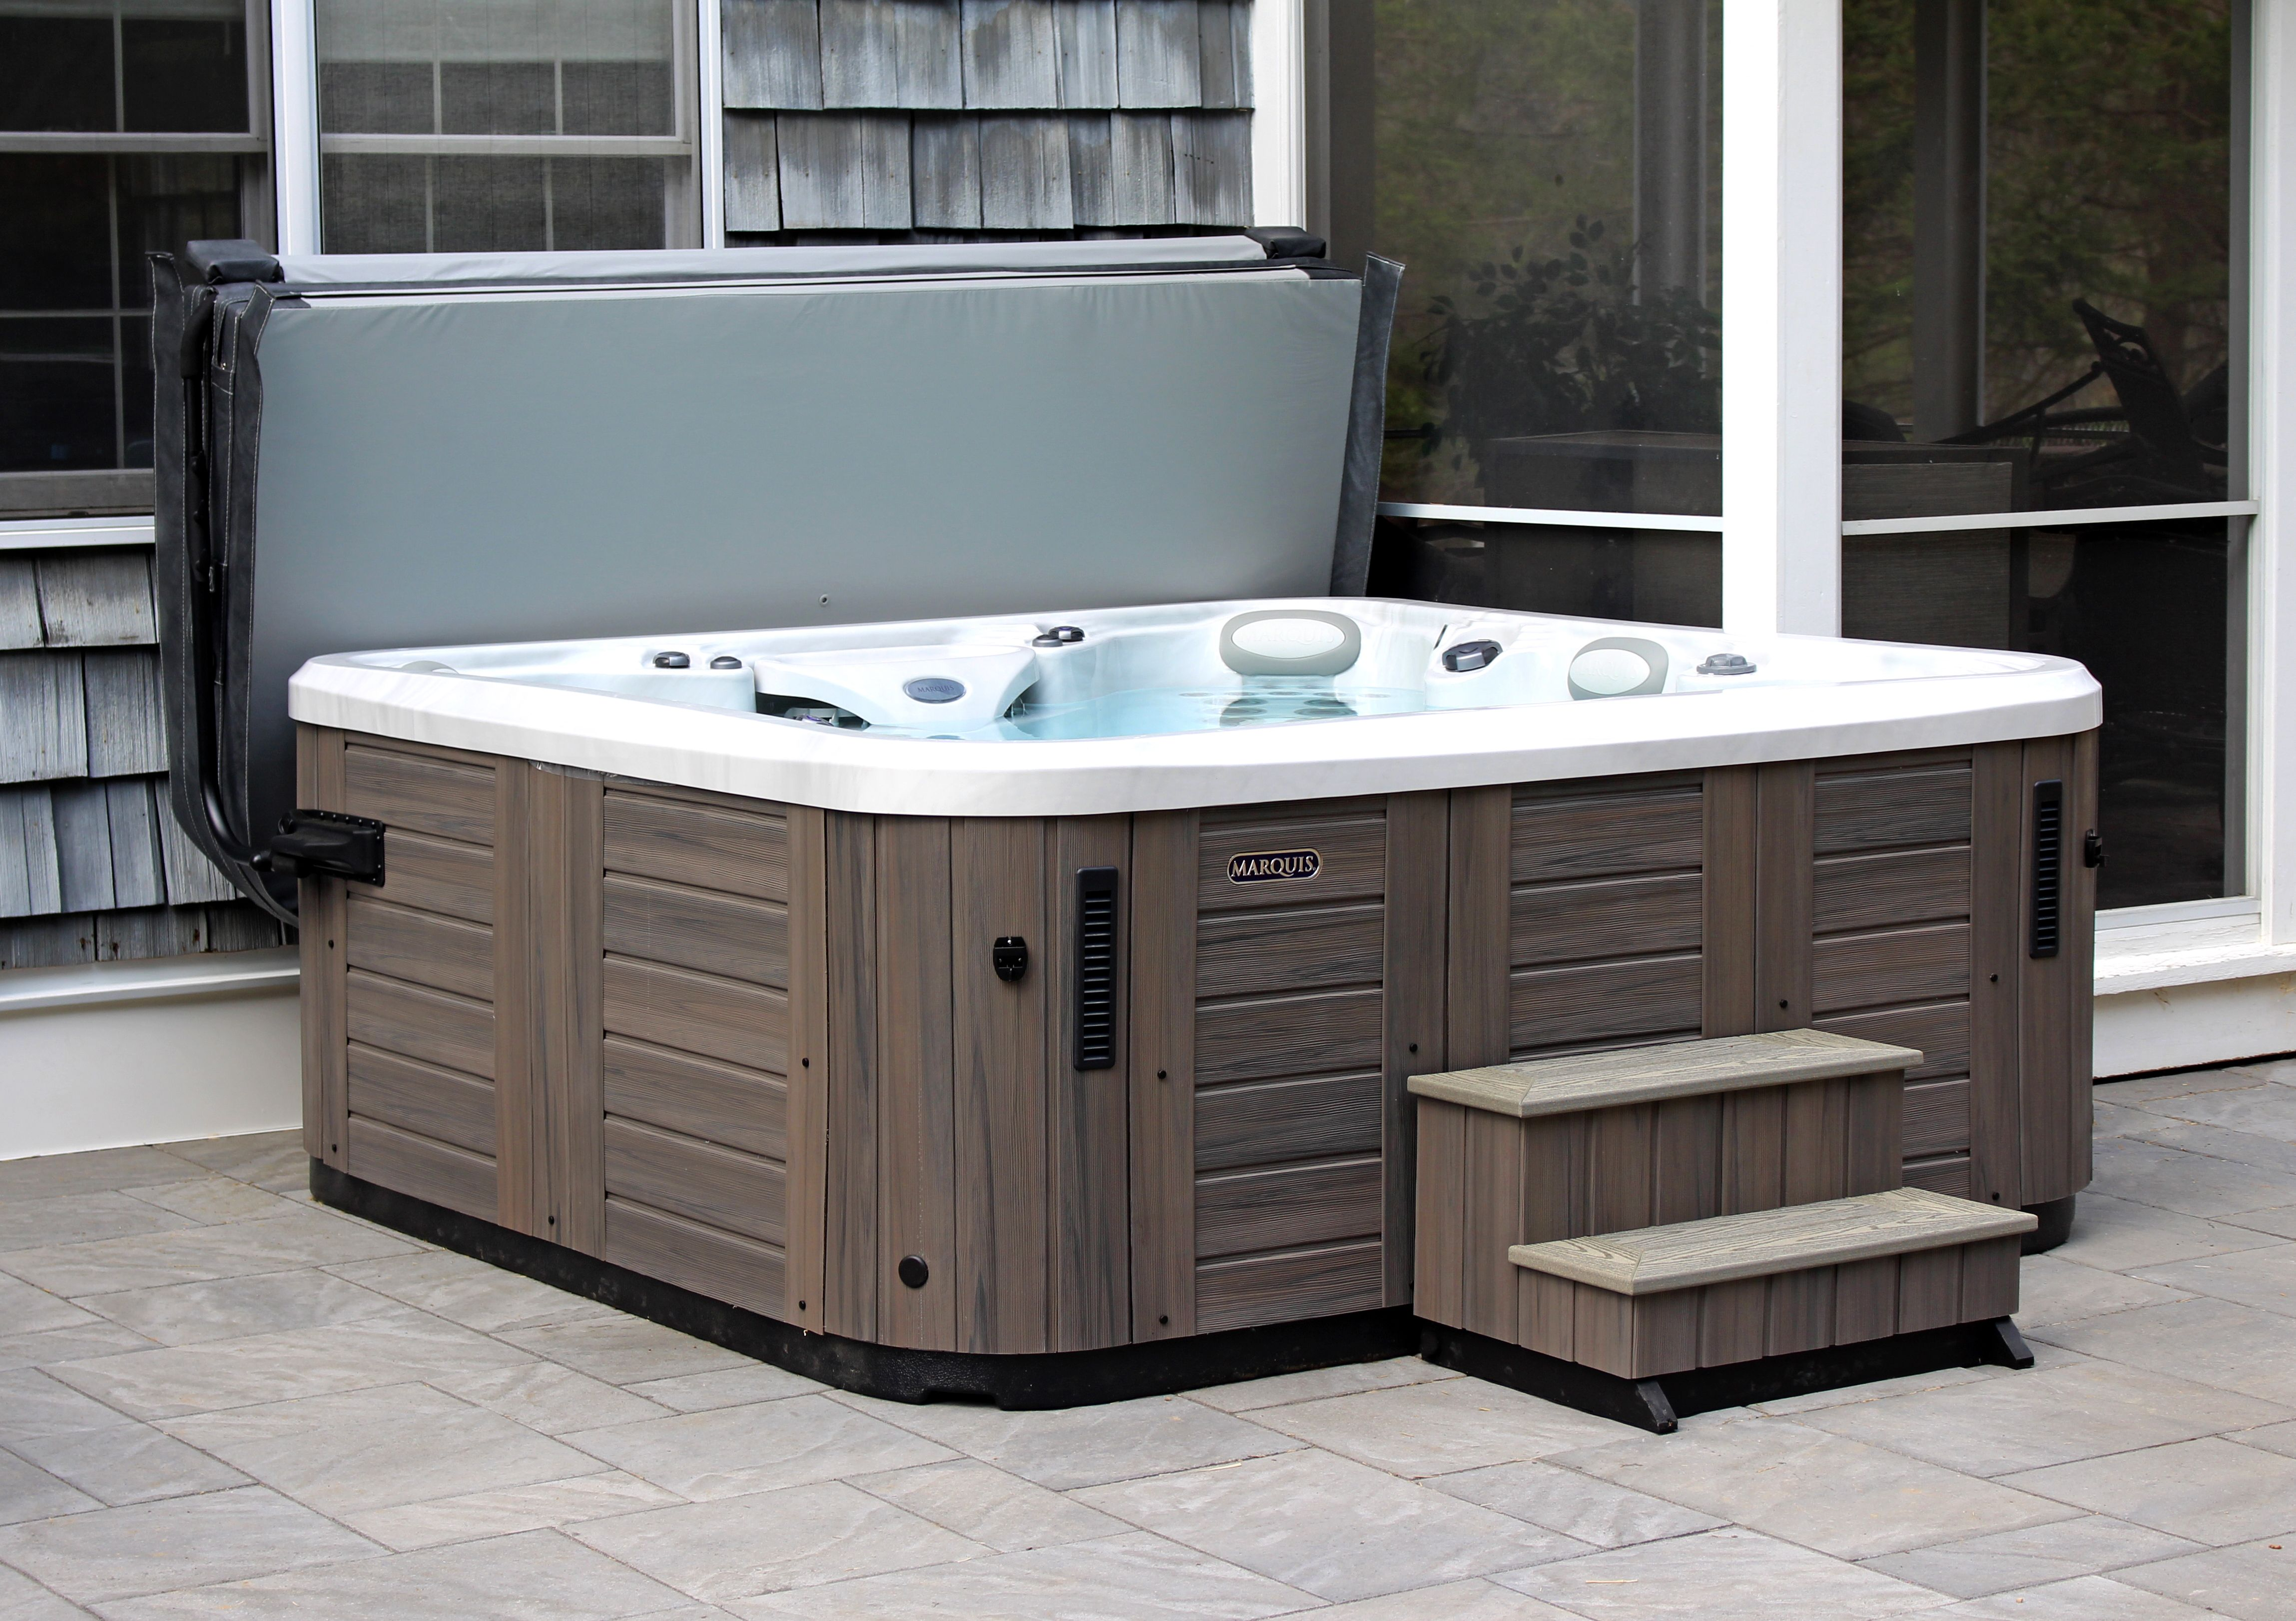 Outdoor Hot Tubs For Sale In Ny Ct Jacuzzi Suppliers Jacuzzi Hot Tub Hot Tub Pergola Hot Tub Patio